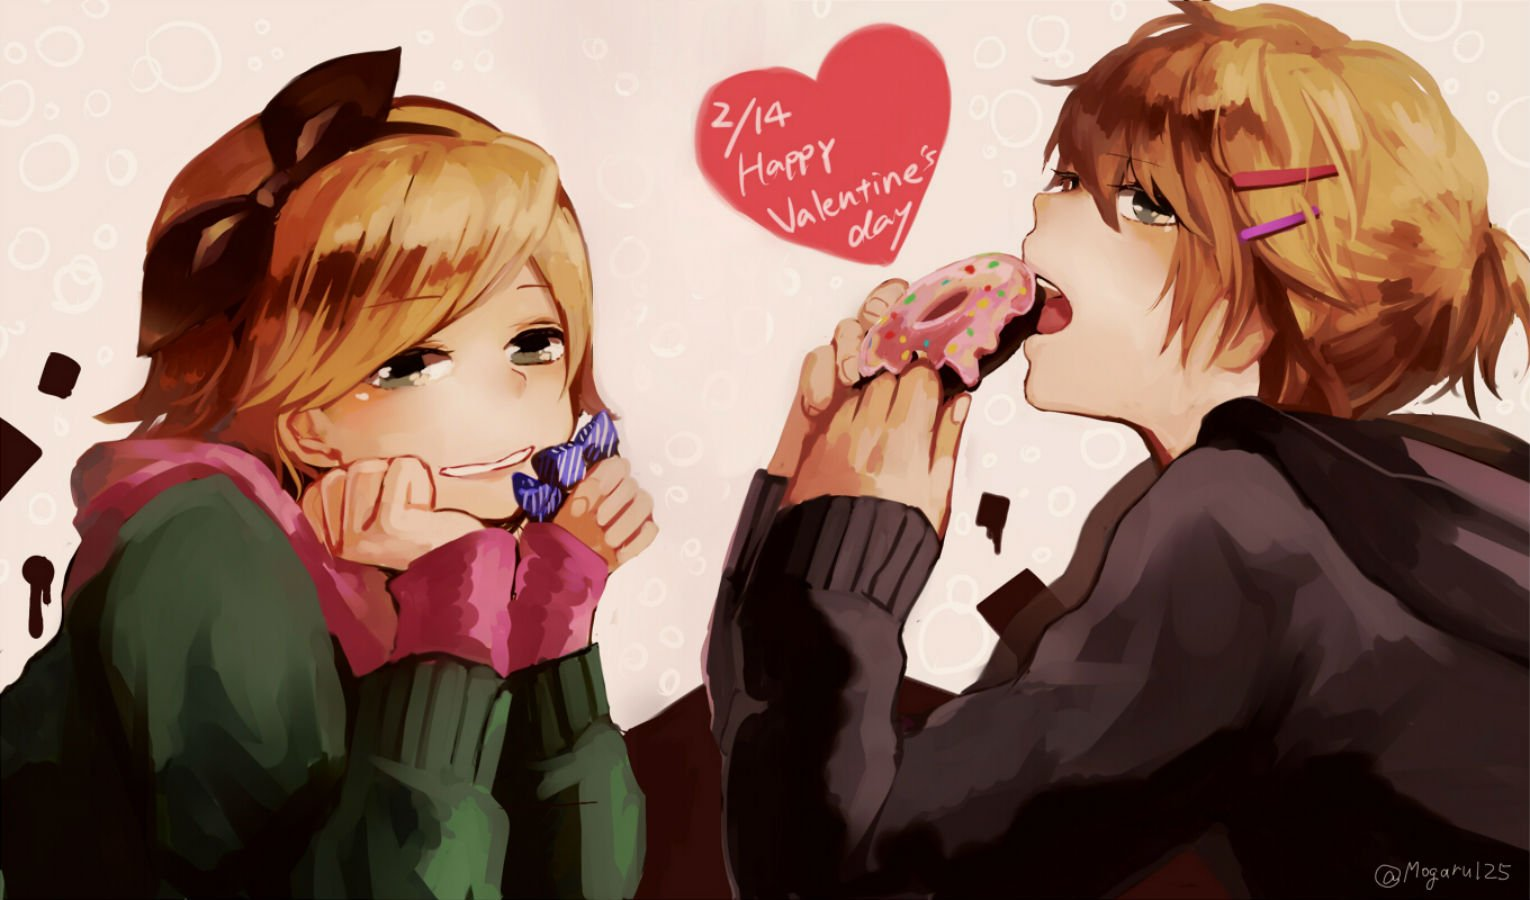 vocaloid blonde hair food gray eyes kagamine len kagamine rin short hair signed valentine vocaloid